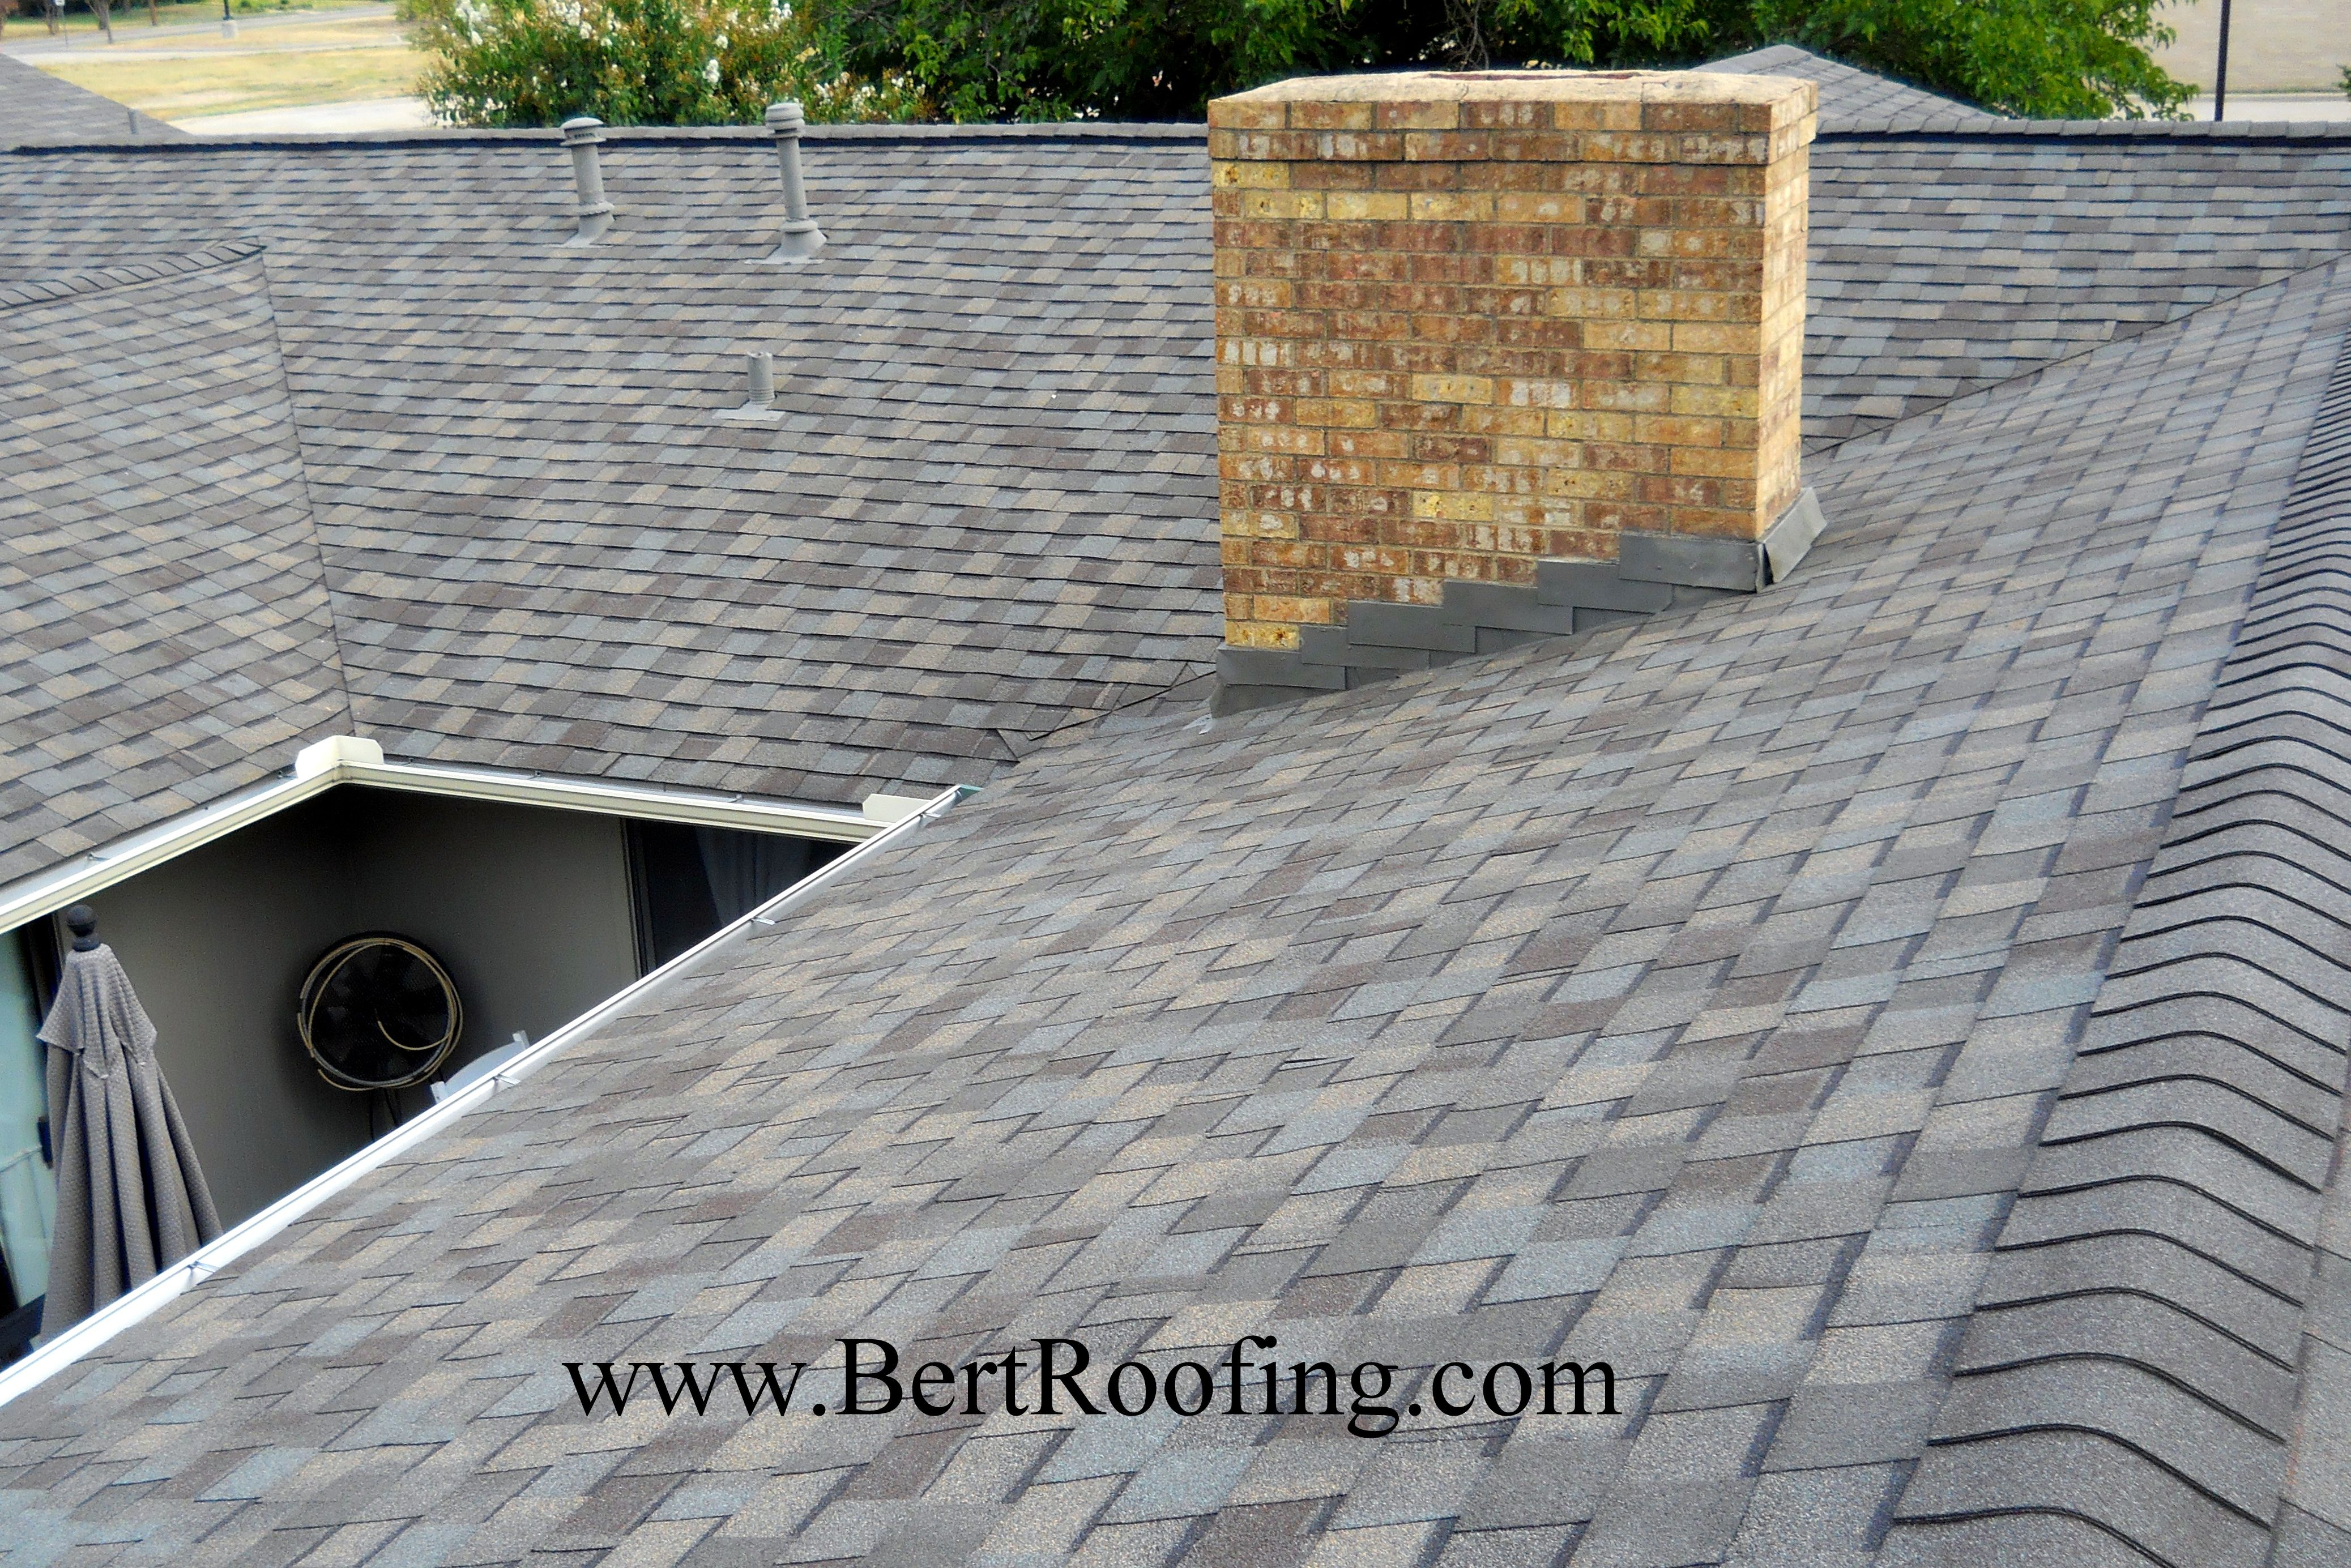 Certainteed Landmark Ir Impact Resistant Class 4 Composition Shingle Color Weathered Wood Installed By Bert Roofi Shingle Colors Roofing Roofing Contractors